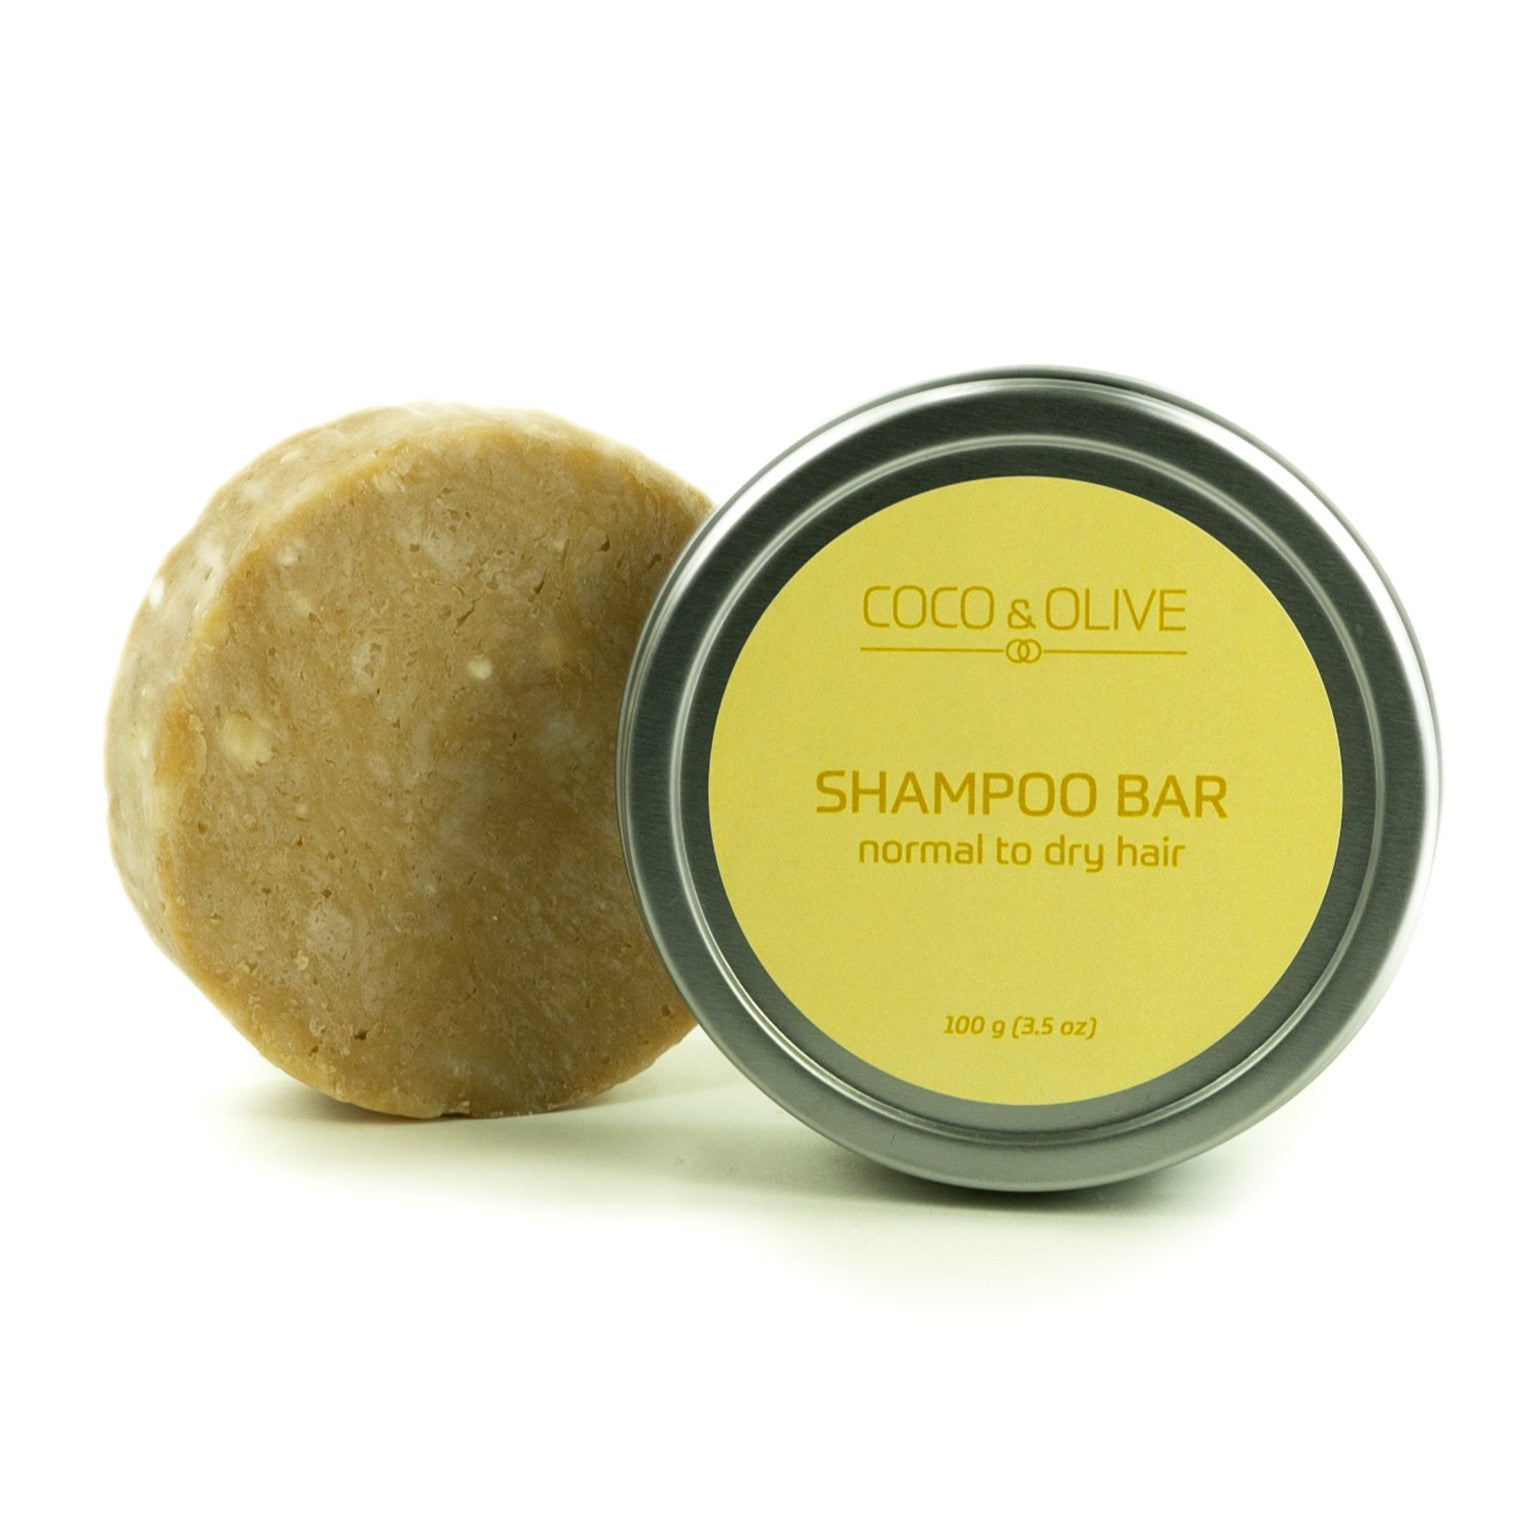 Coco & Olive Shampoo Bar Normal to Dry hair. Moisturize your hair leaving it healthy, soft, and manageable.